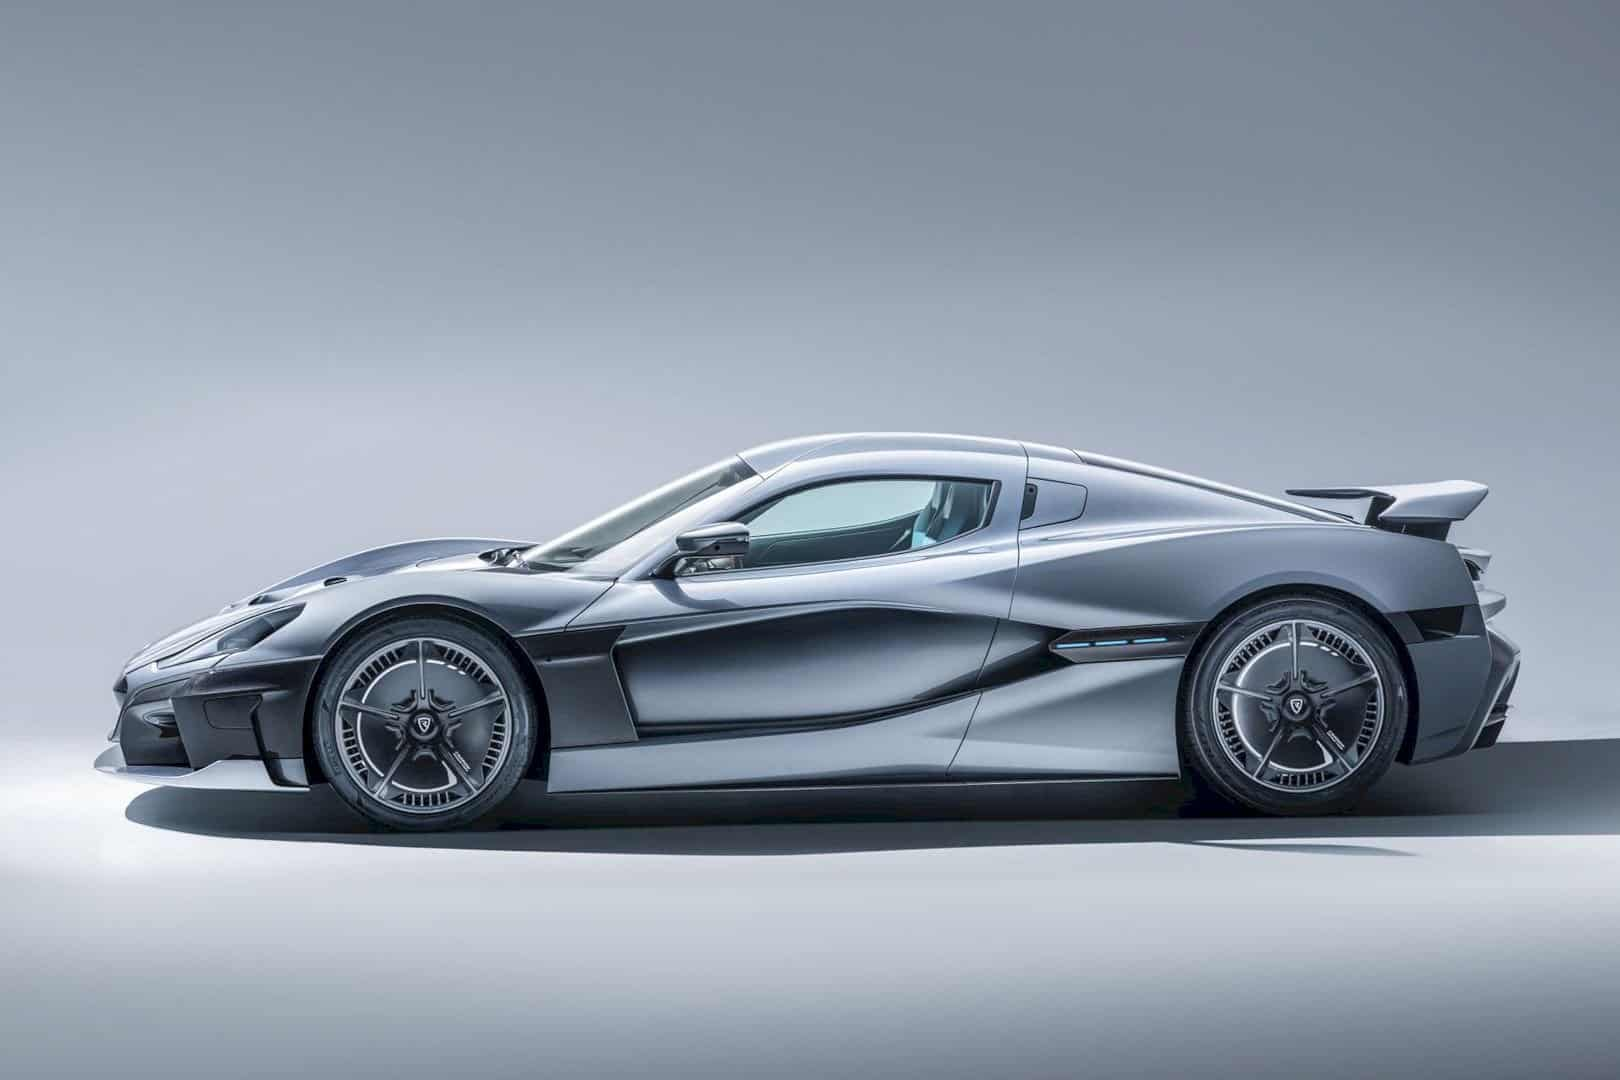 Rimac C_Two: The Hypercar We Have Been Waiting For